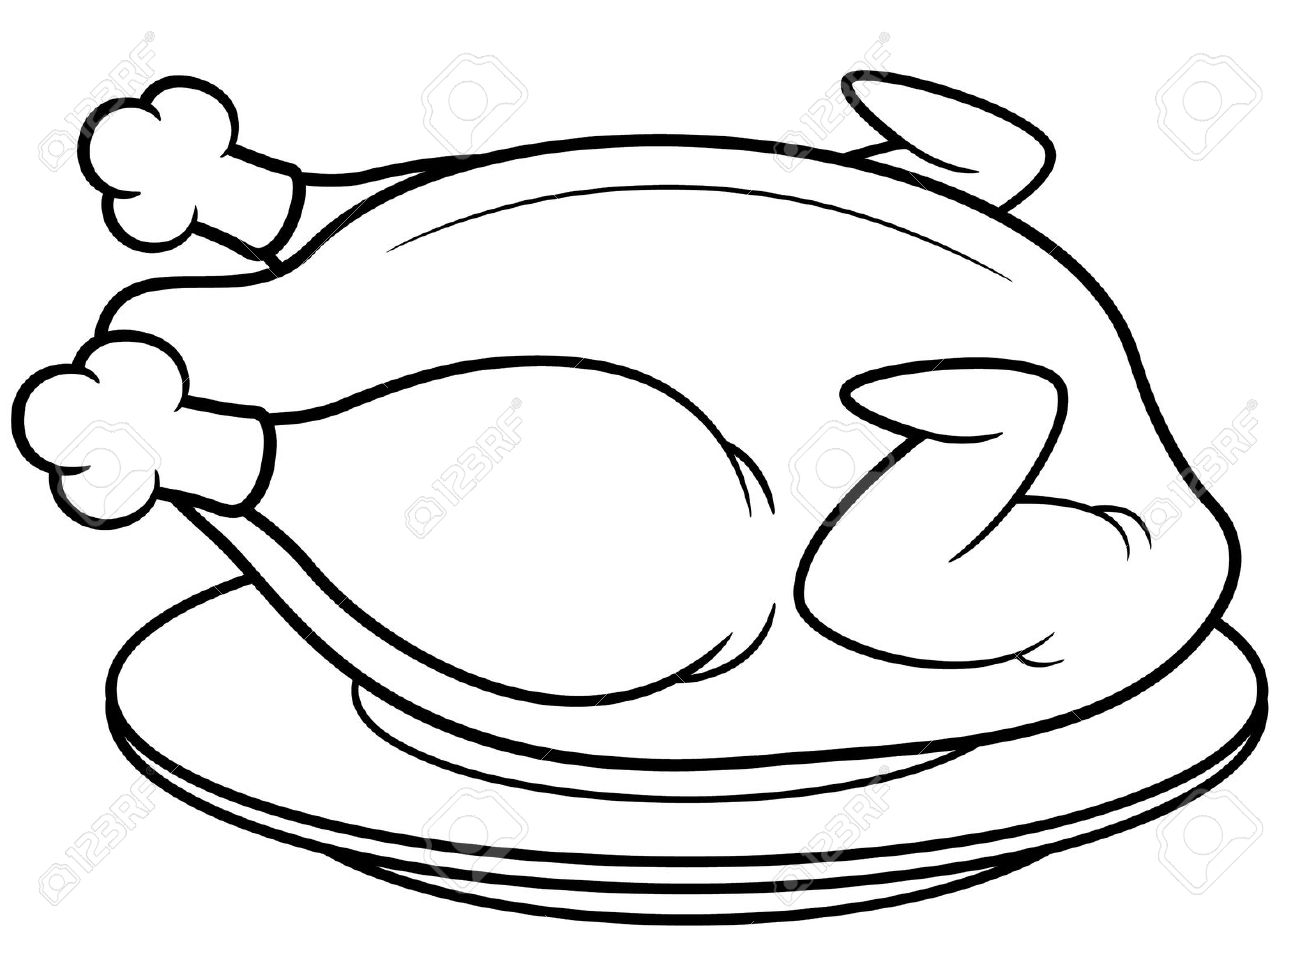 plate clipart black and white free download best plate cartoon turkey clipart black and white cartoon thanksgiving turkey clipart